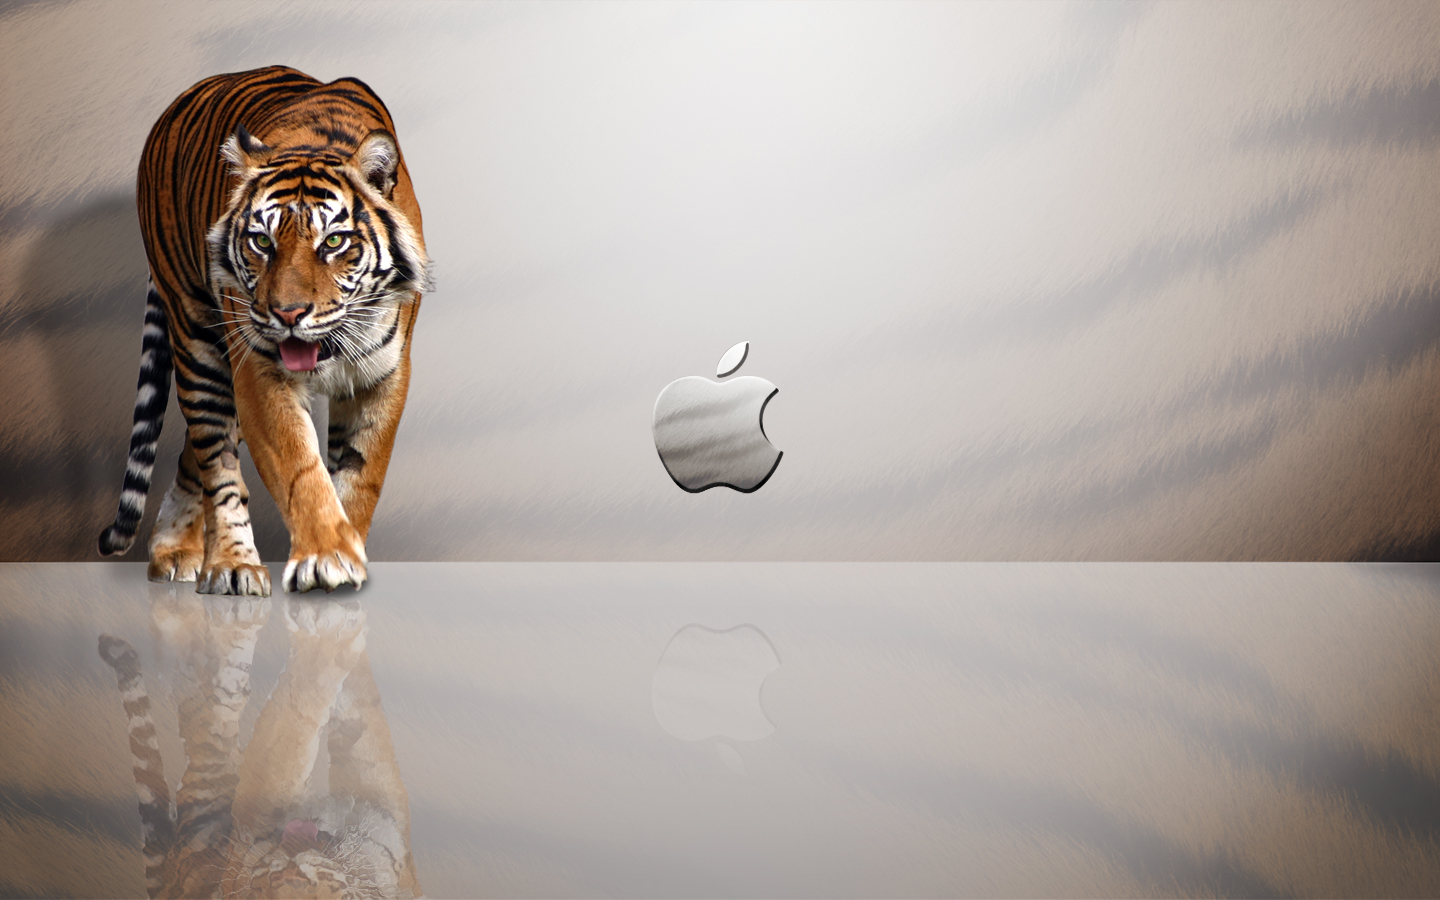 apple mac wallpapers hd nice wallpapers